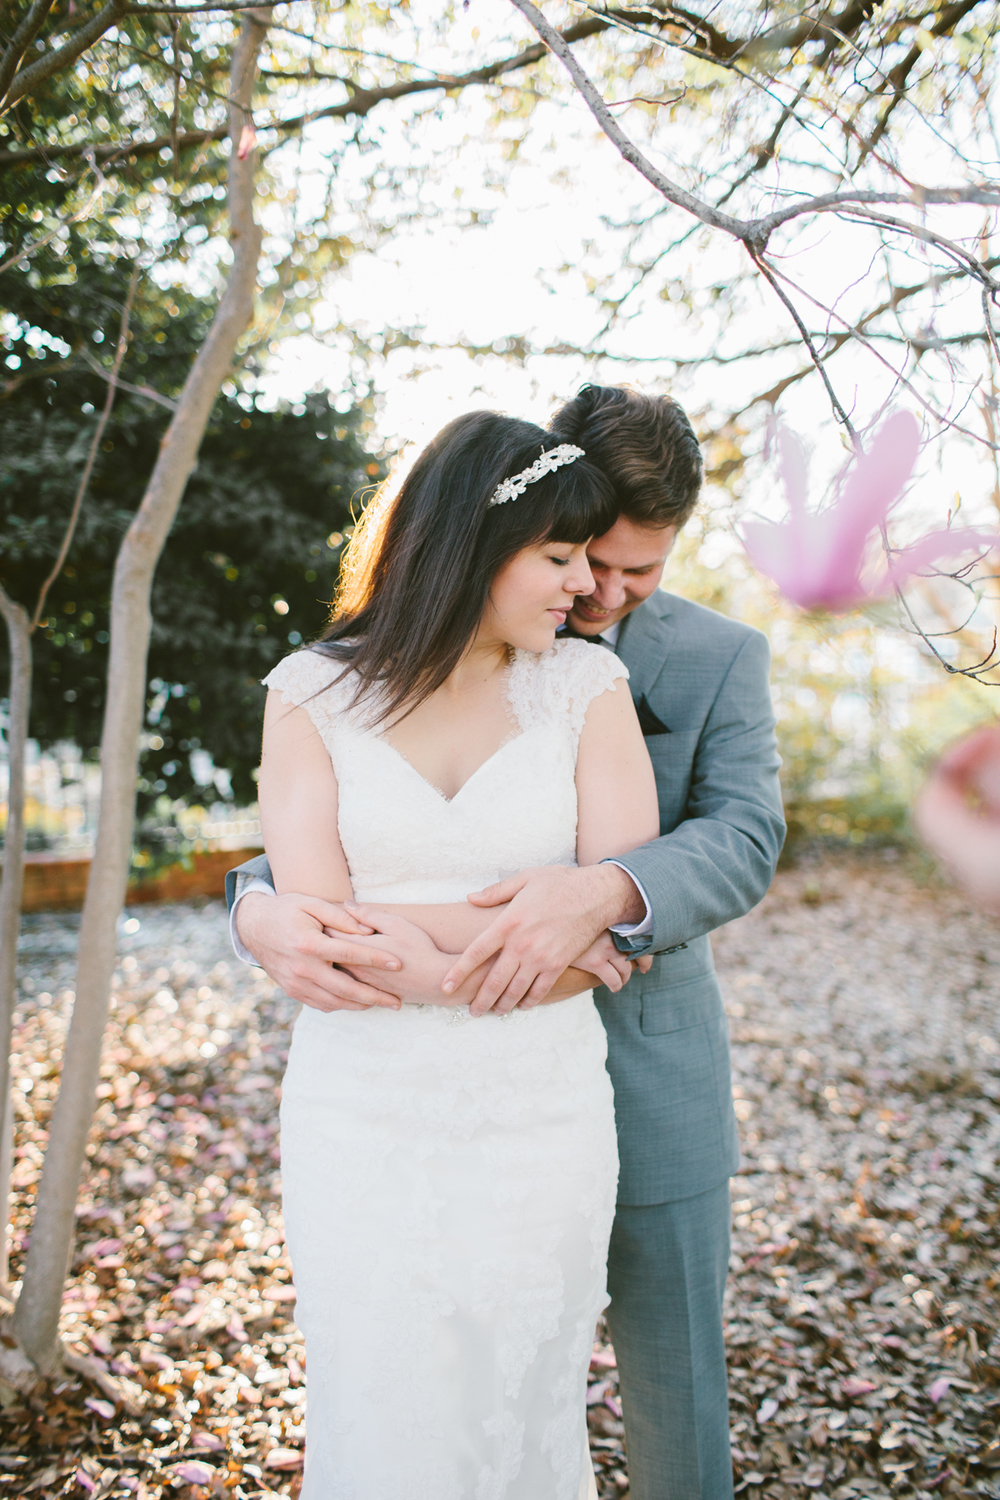 erika_wedding_2015_edit (56 of 80).jpg